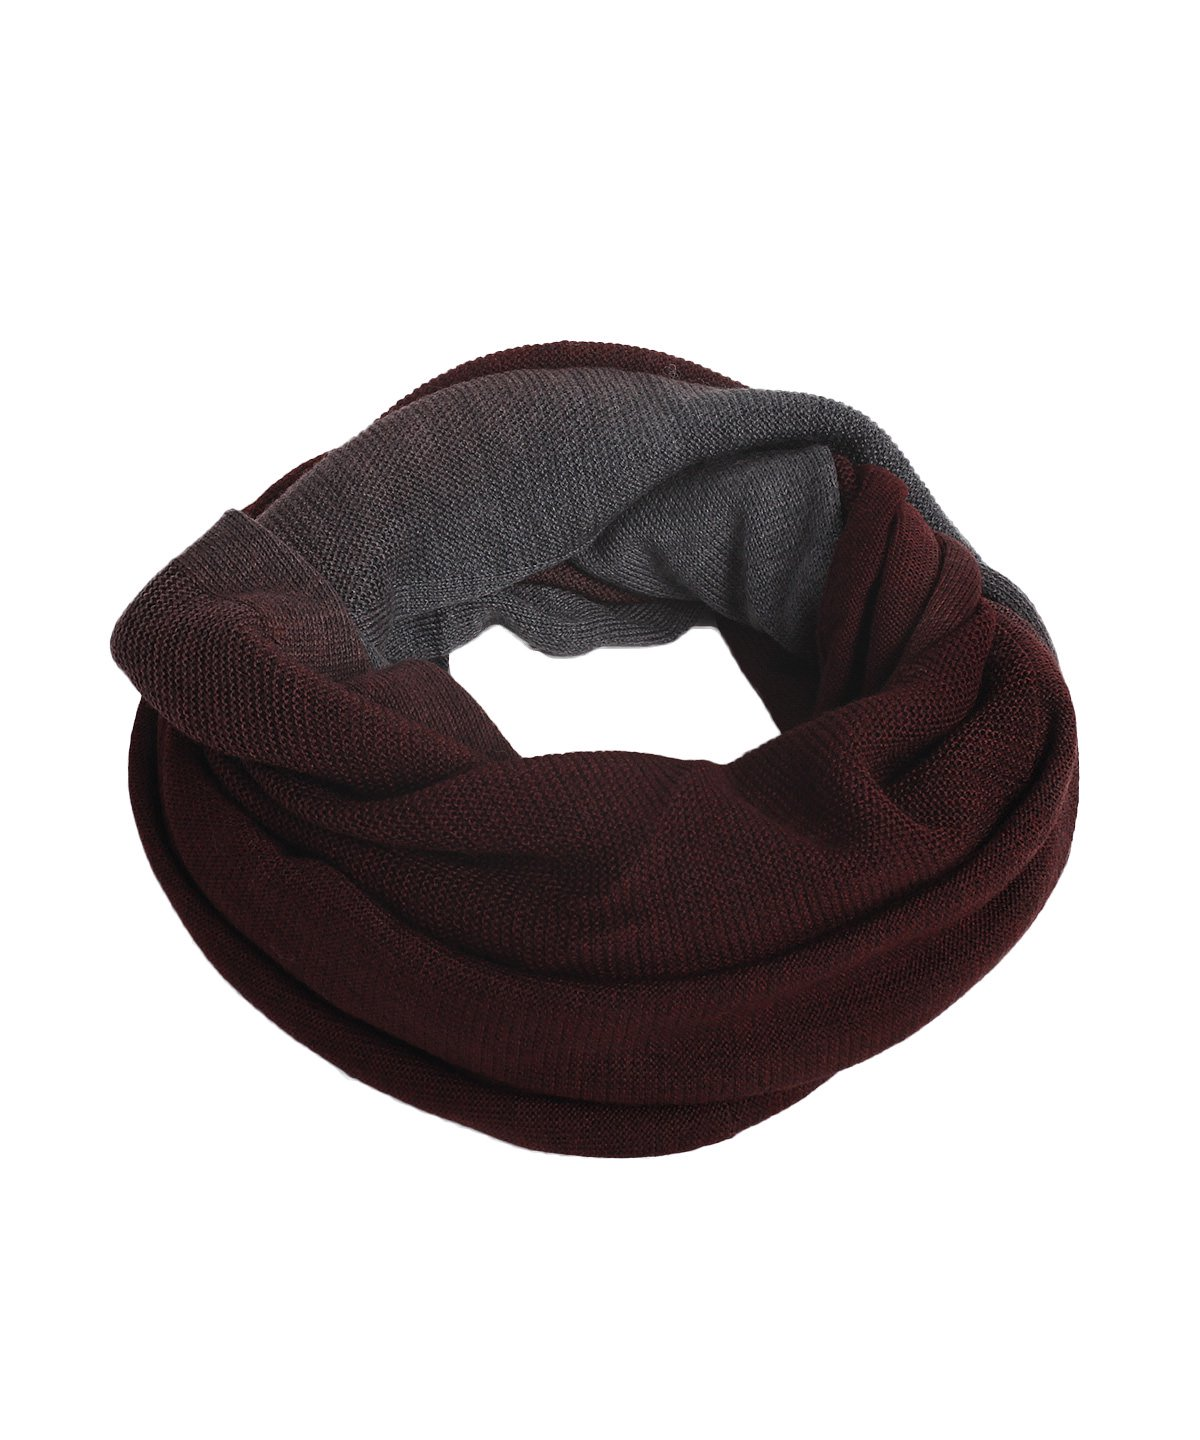 GRADATION TWIST NECKWARMER 詳細画像3